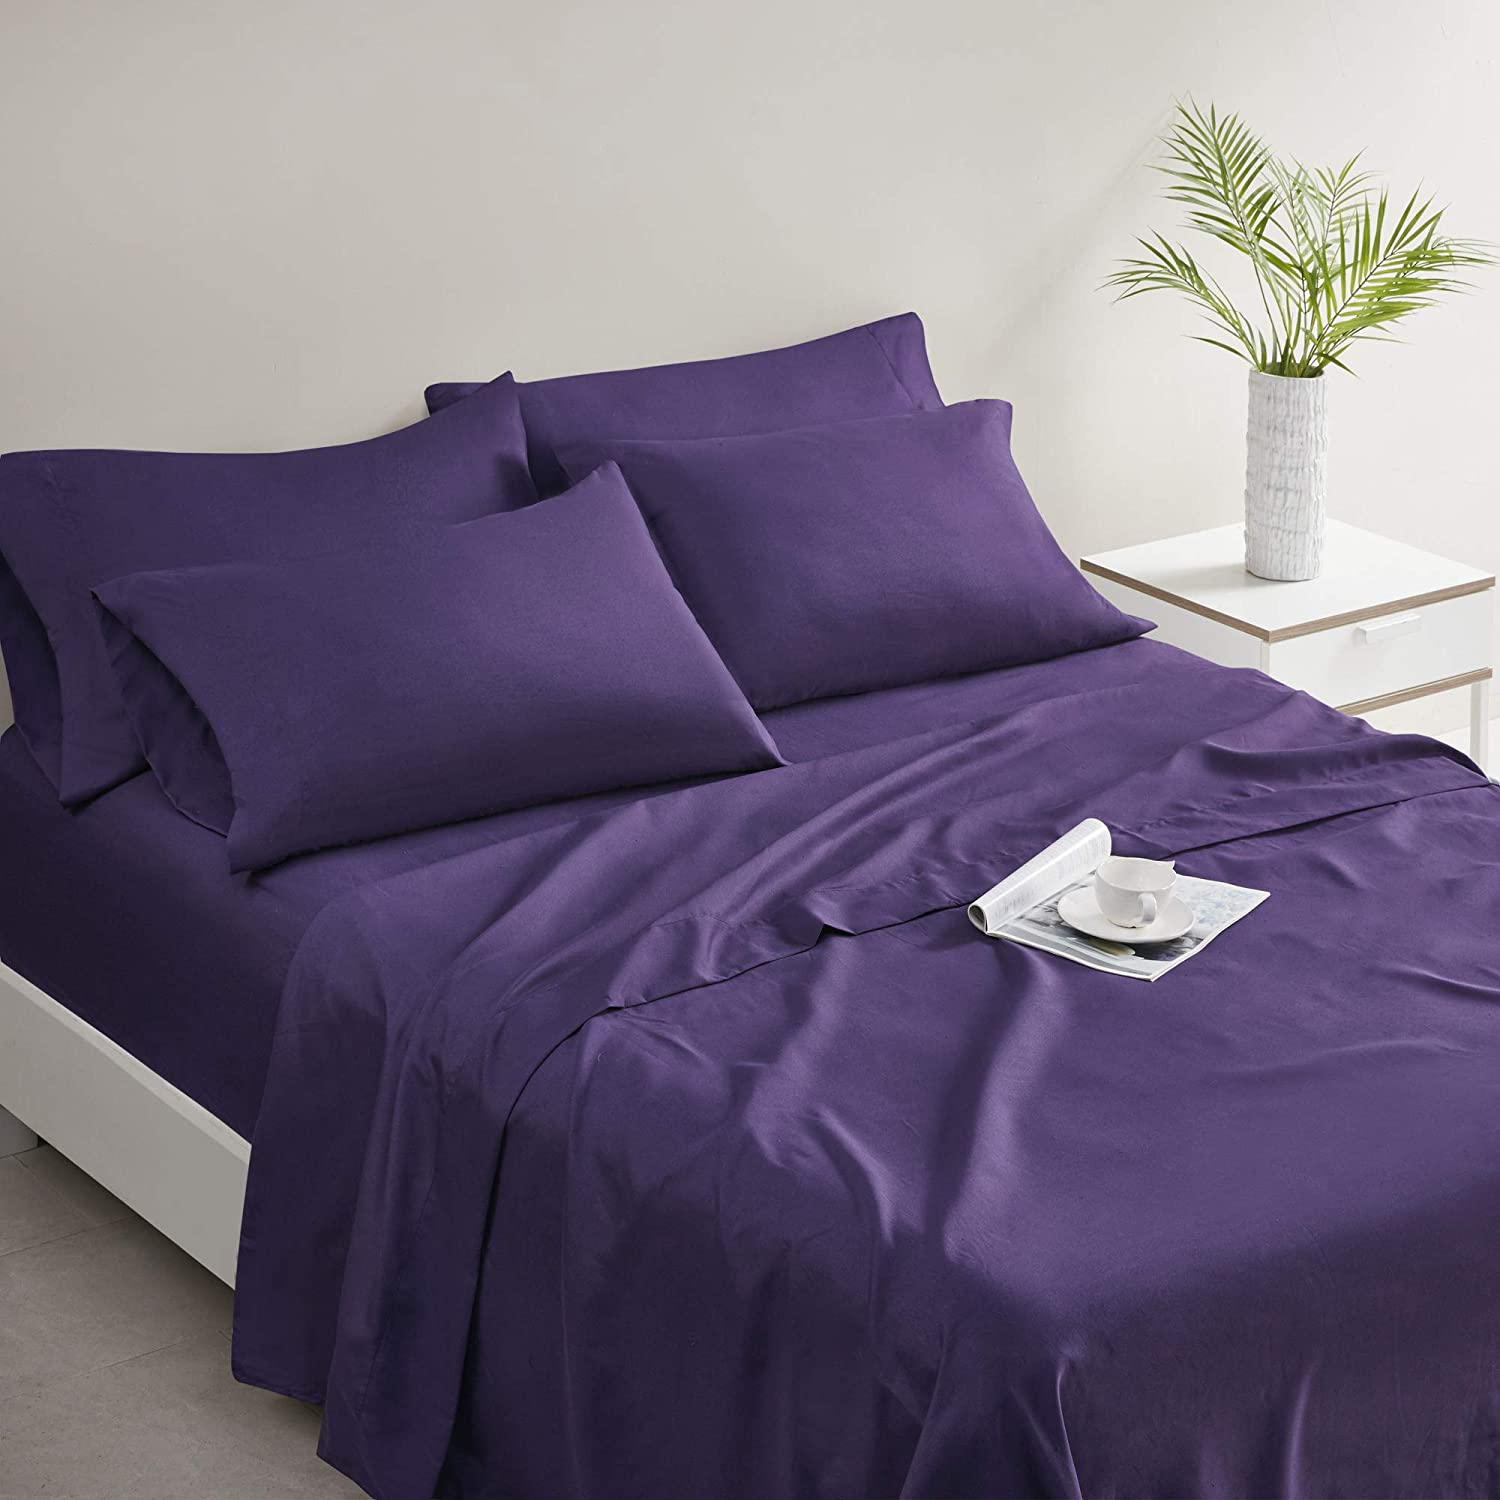 Comfort Spaces Microfiber Bed Sheets Set 14